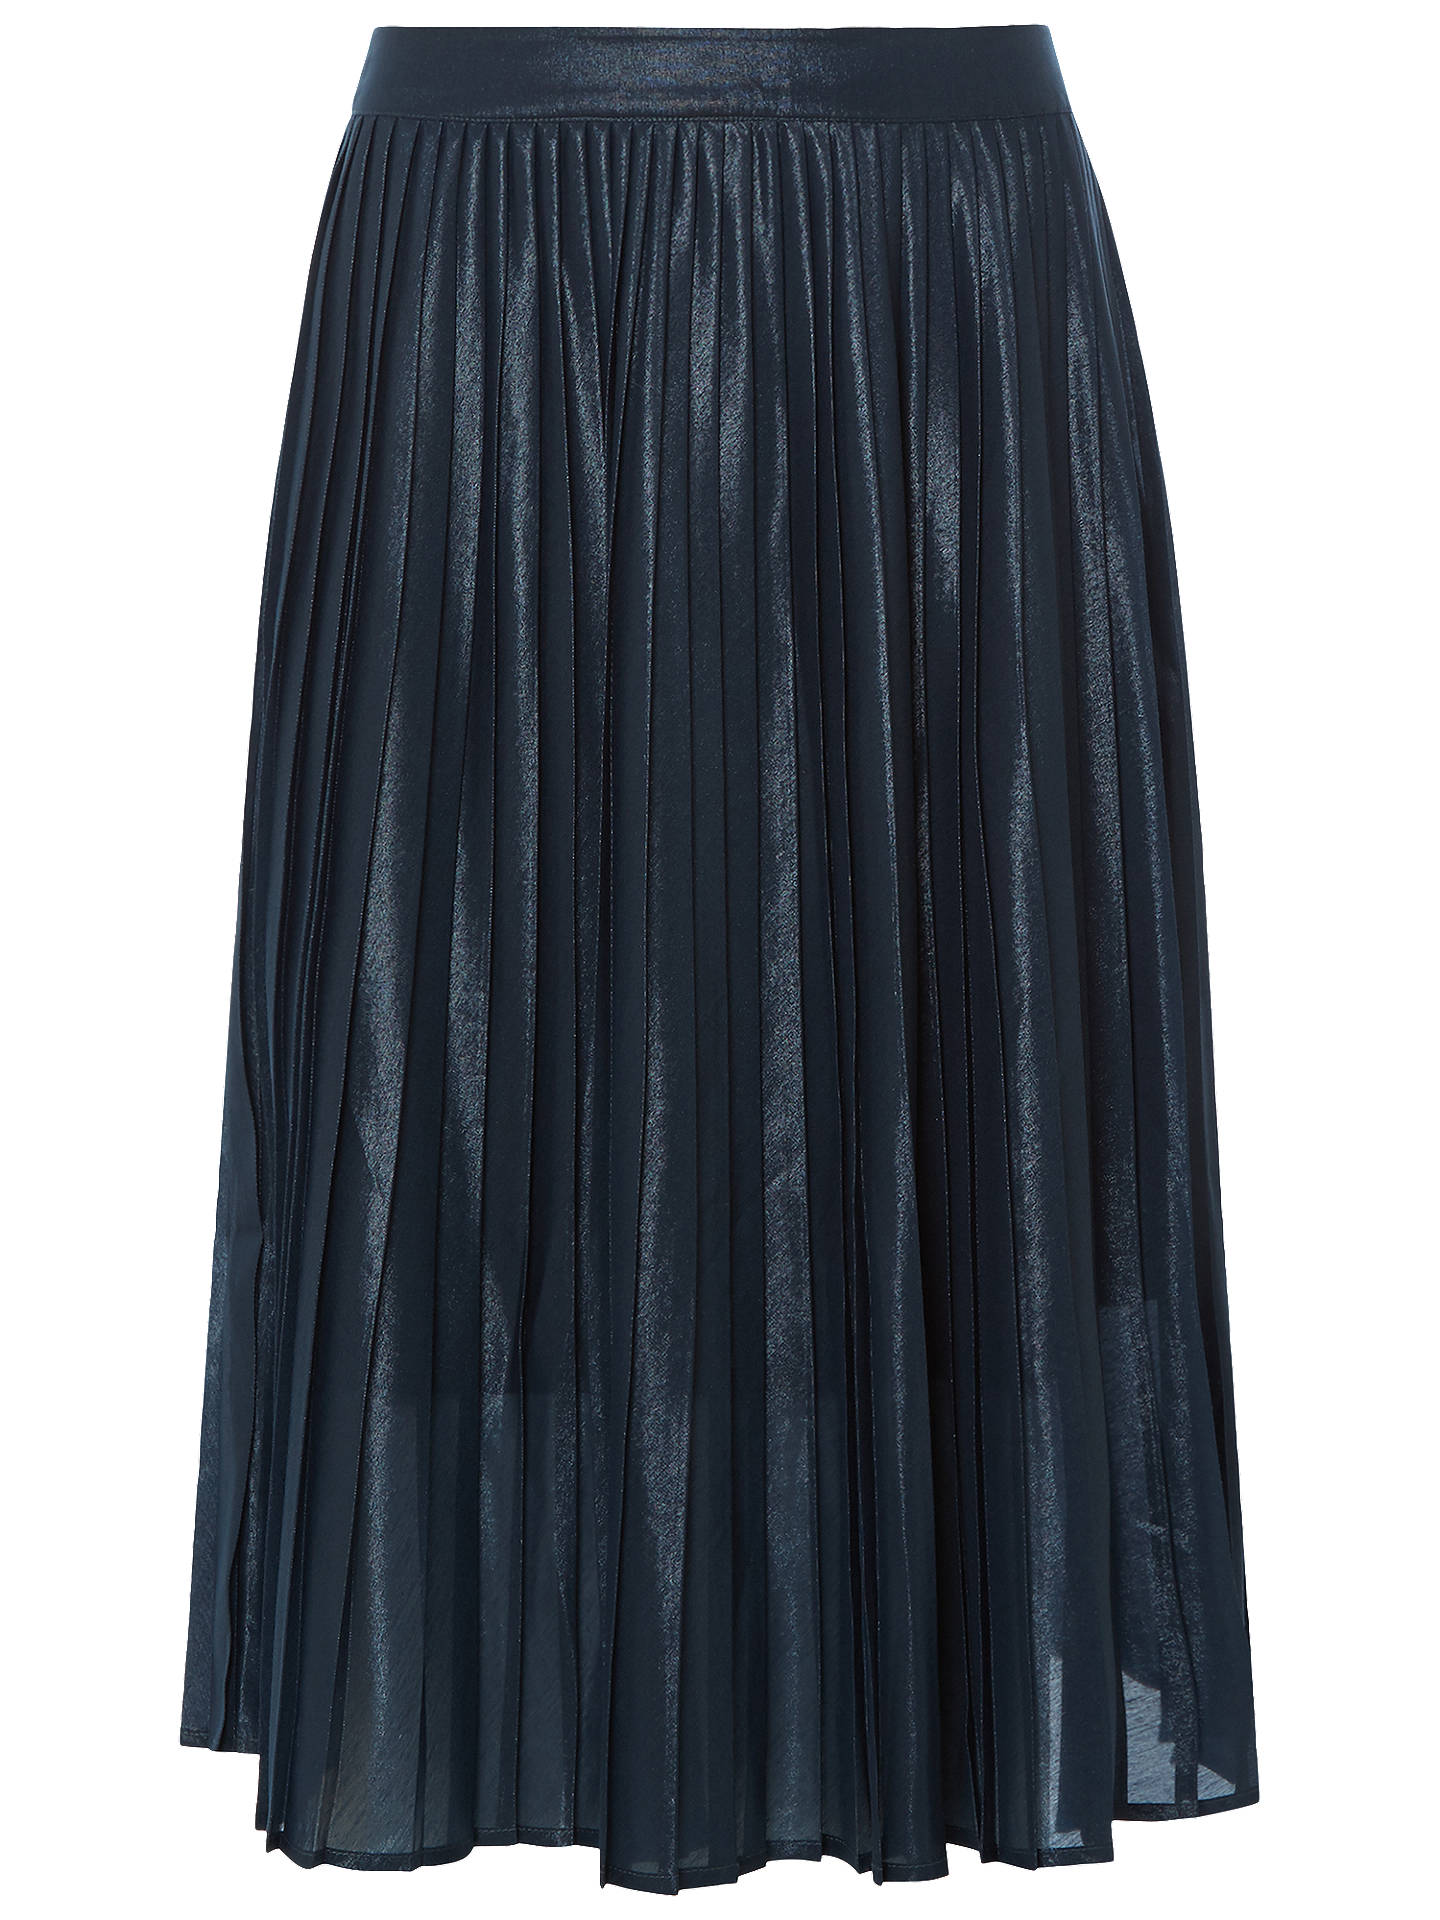 BuyWhite Stuff Edie Pleat Shimmer Skirt, Arran Teal Plain, 6 Online at johnlewis.com